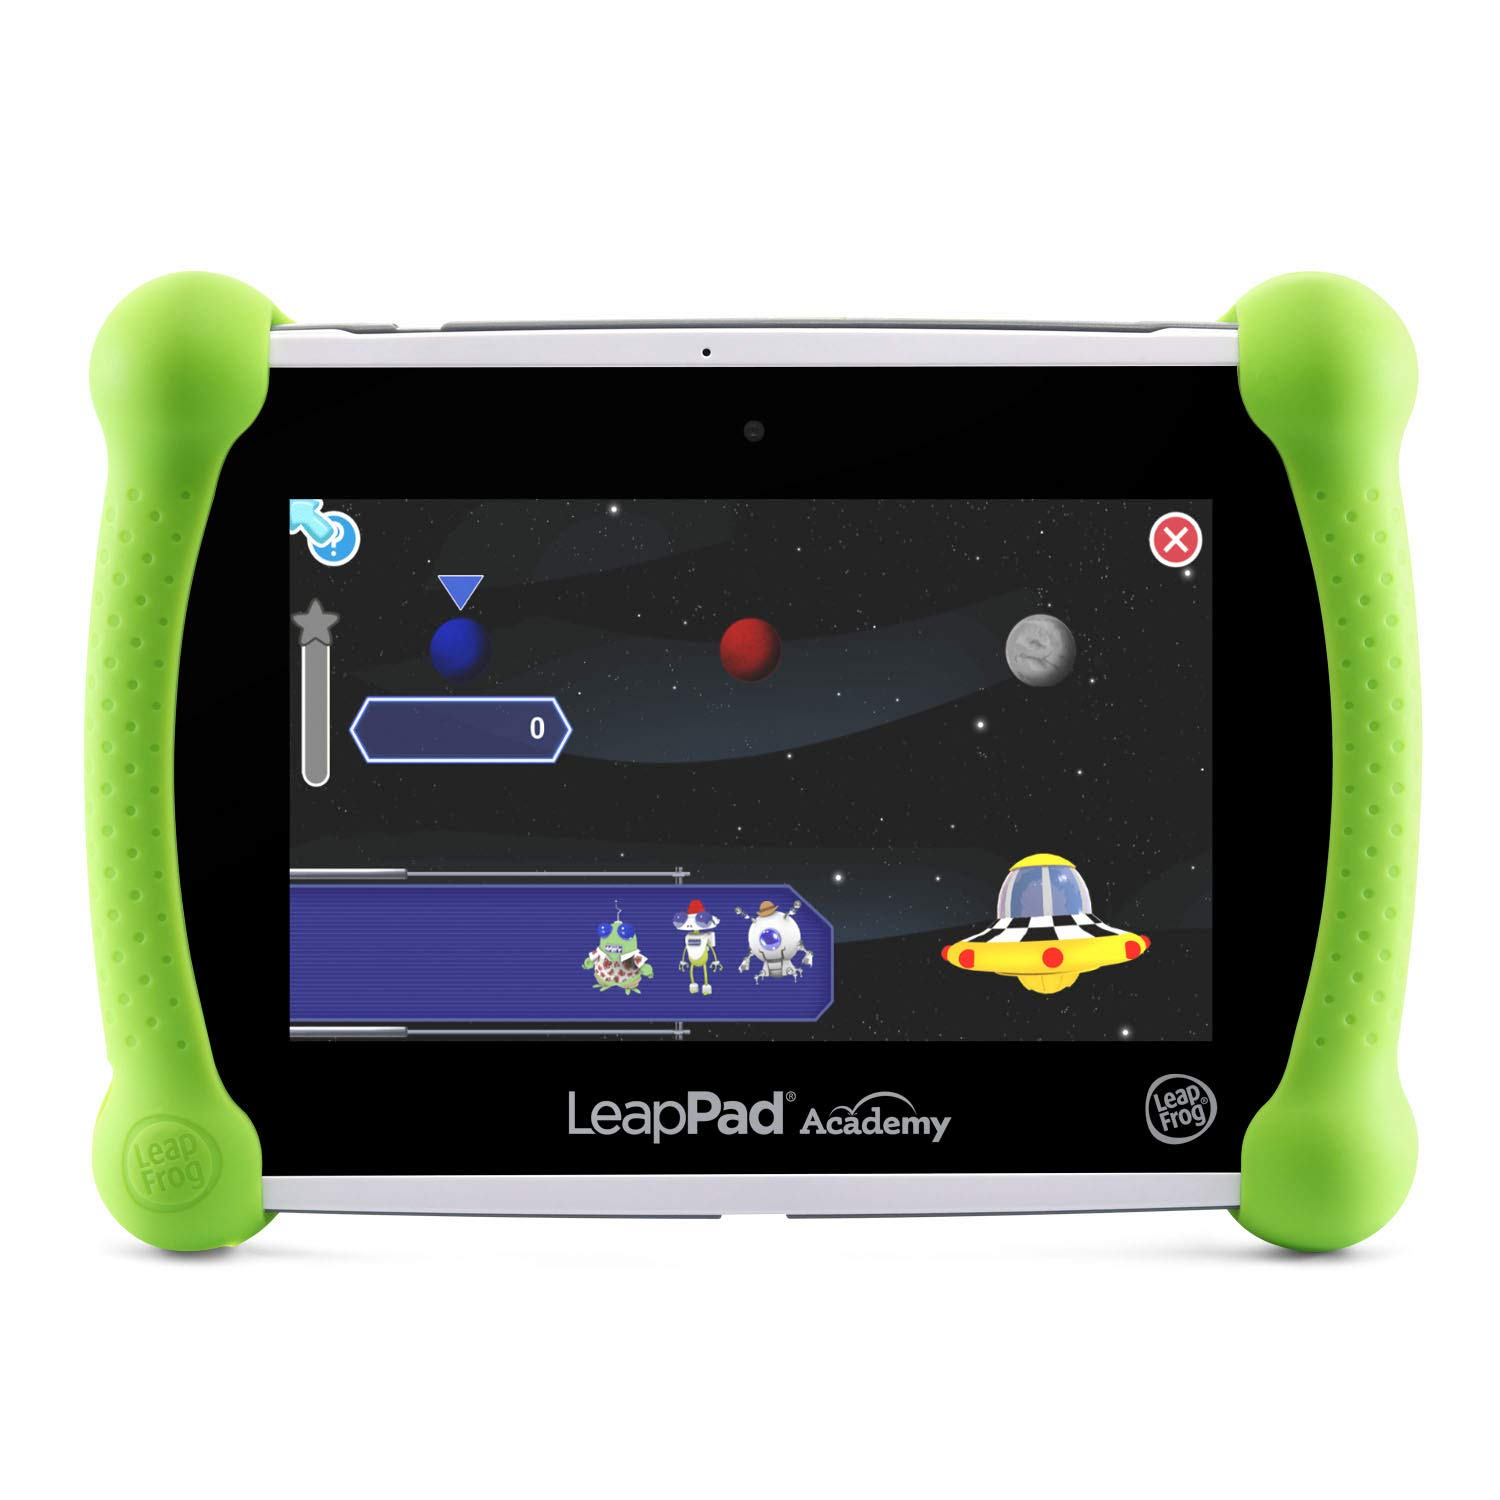 LeapFrog LeapPad Academy Kids' Learning Tablet, Green by LeapFrog (Image #11)